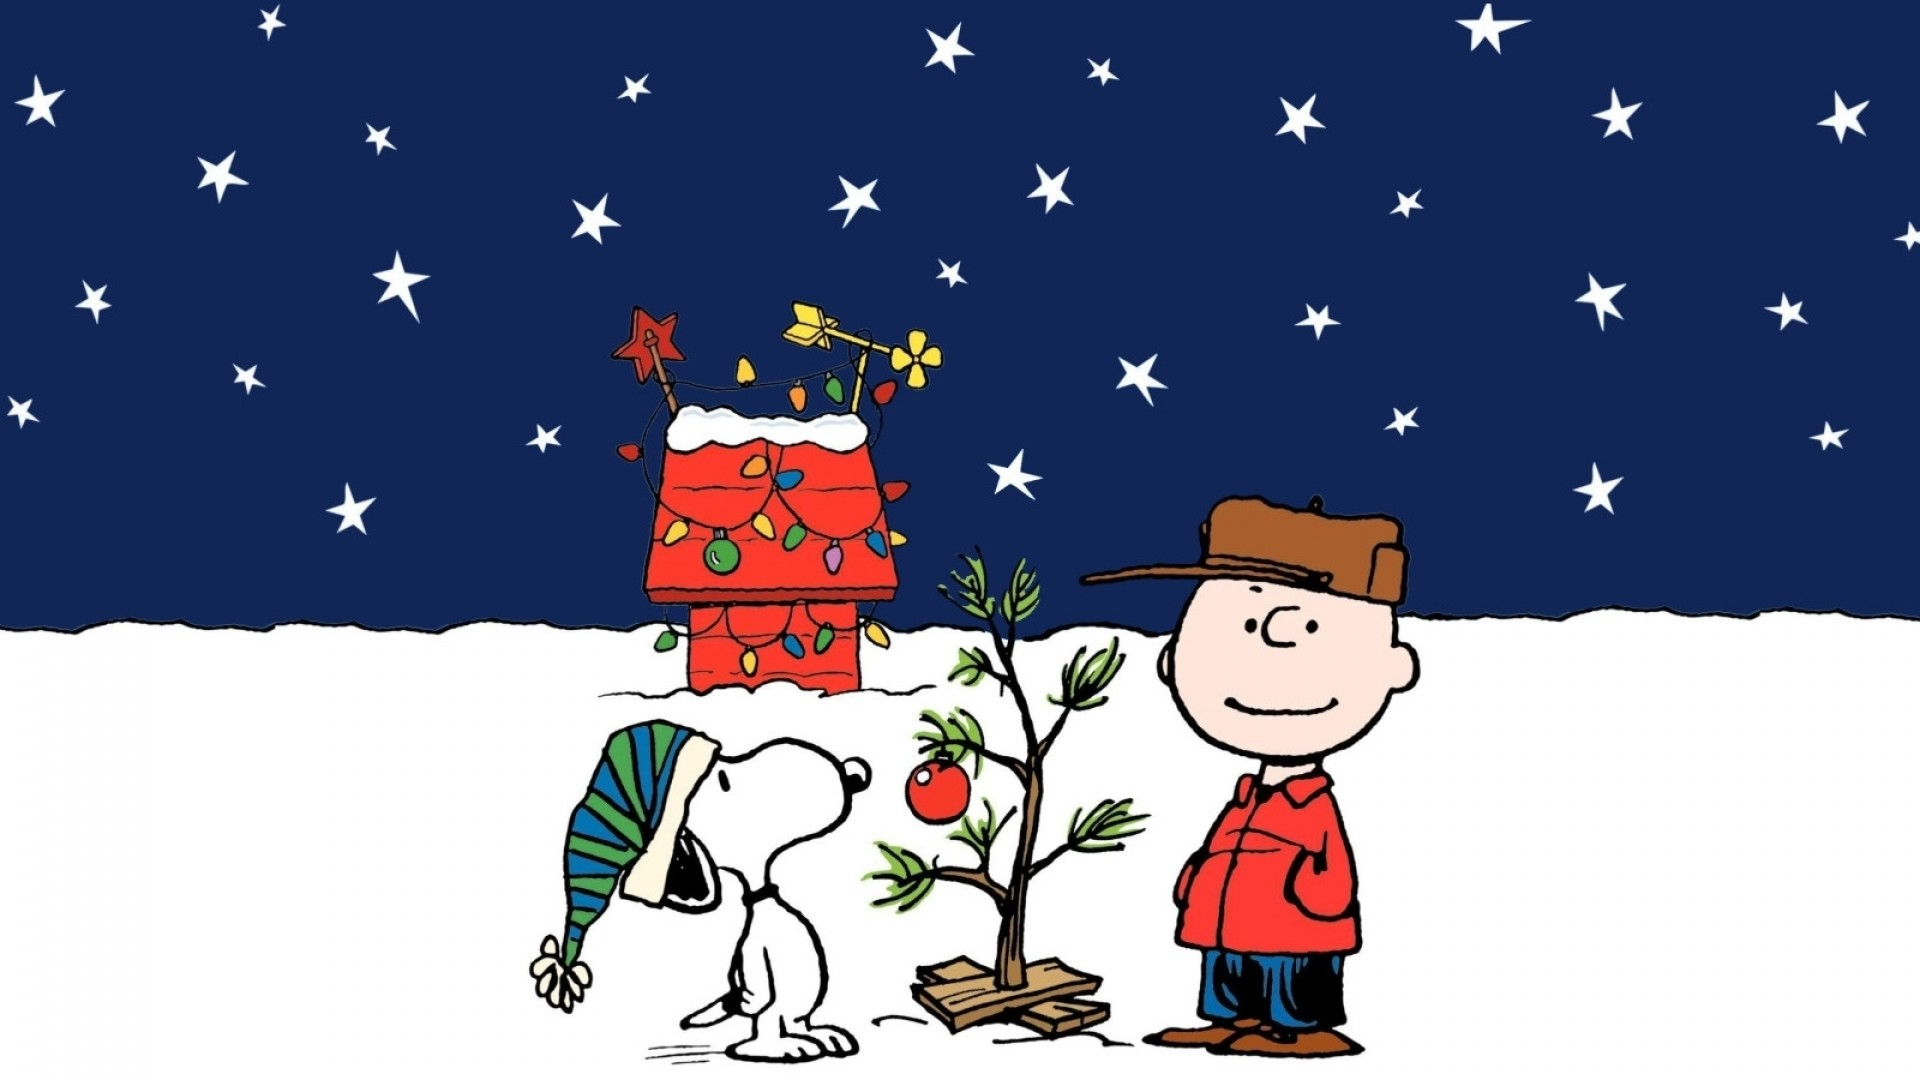 1920x1080 CHARLIE BROWN peanuts comics snoopy christmas gg wallpaper background